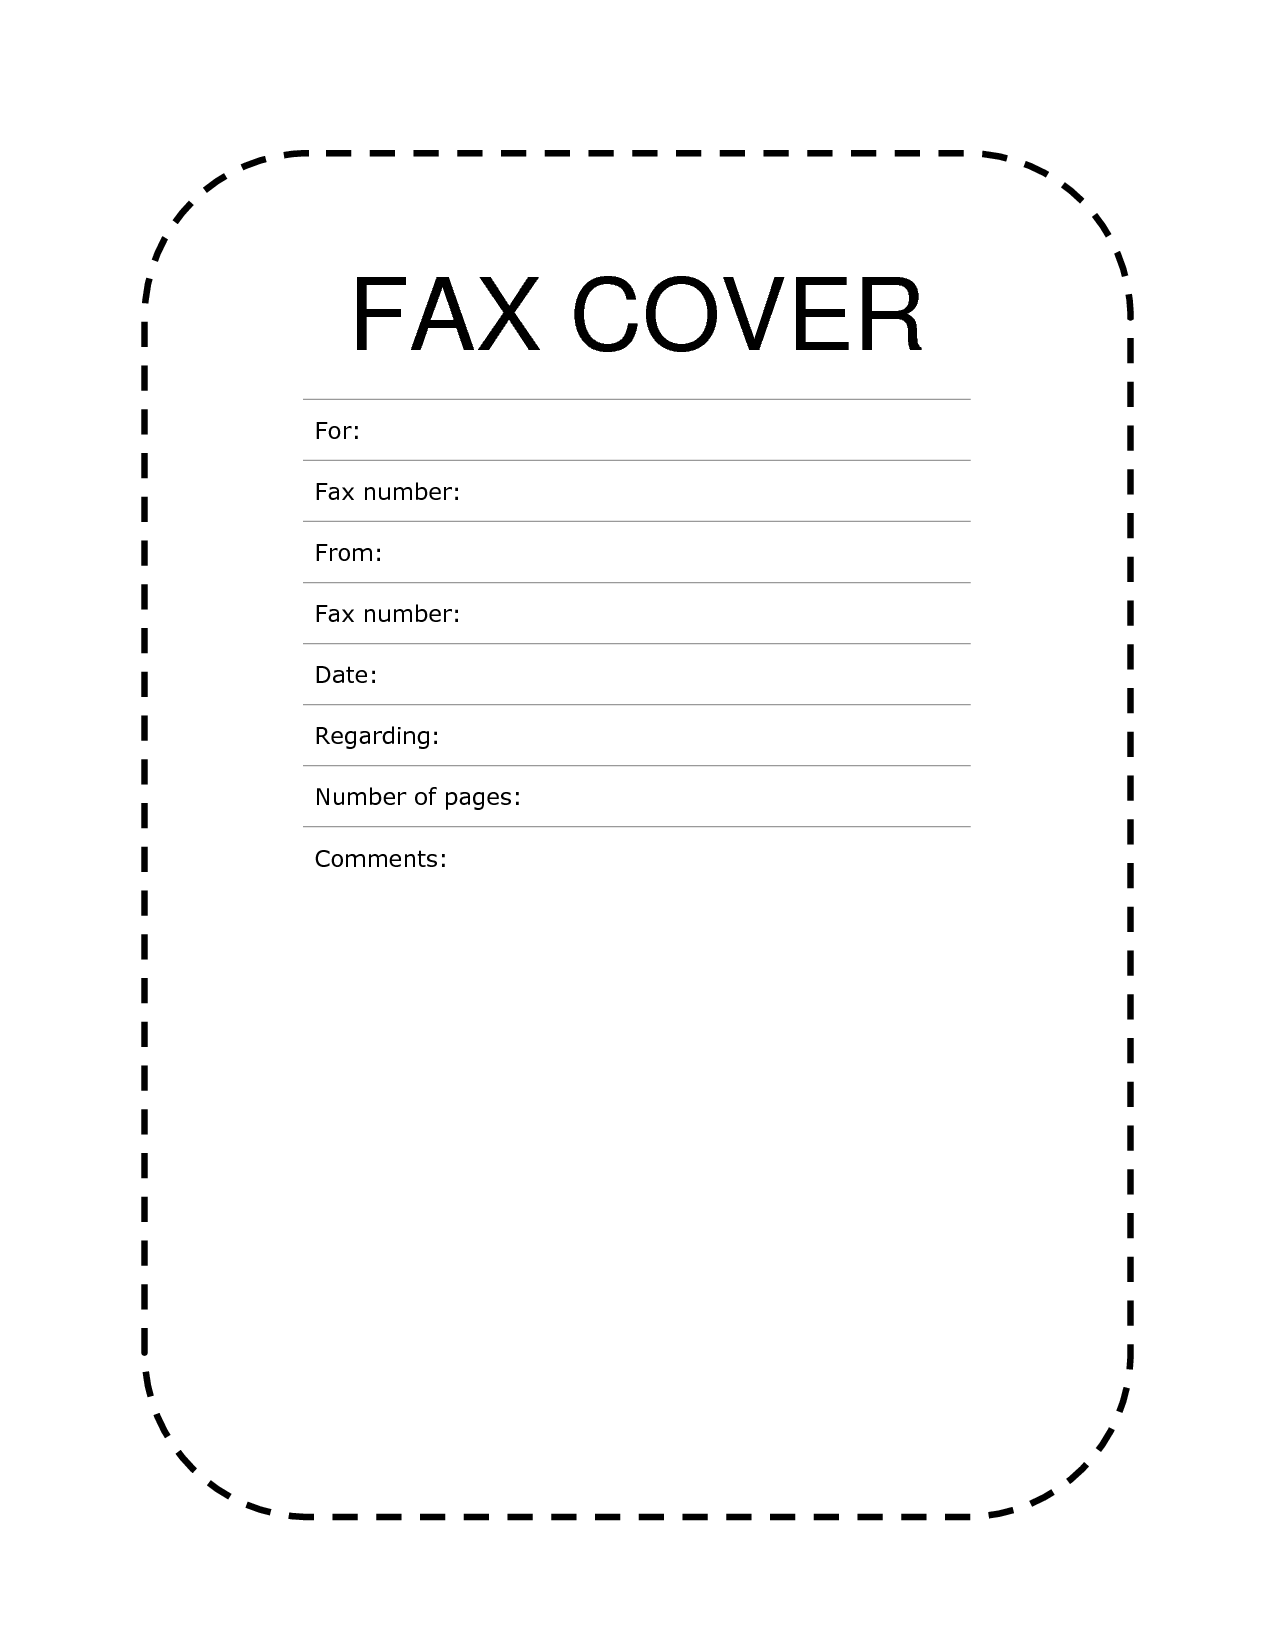 free fax cover sheet template format example pdf printable | fax